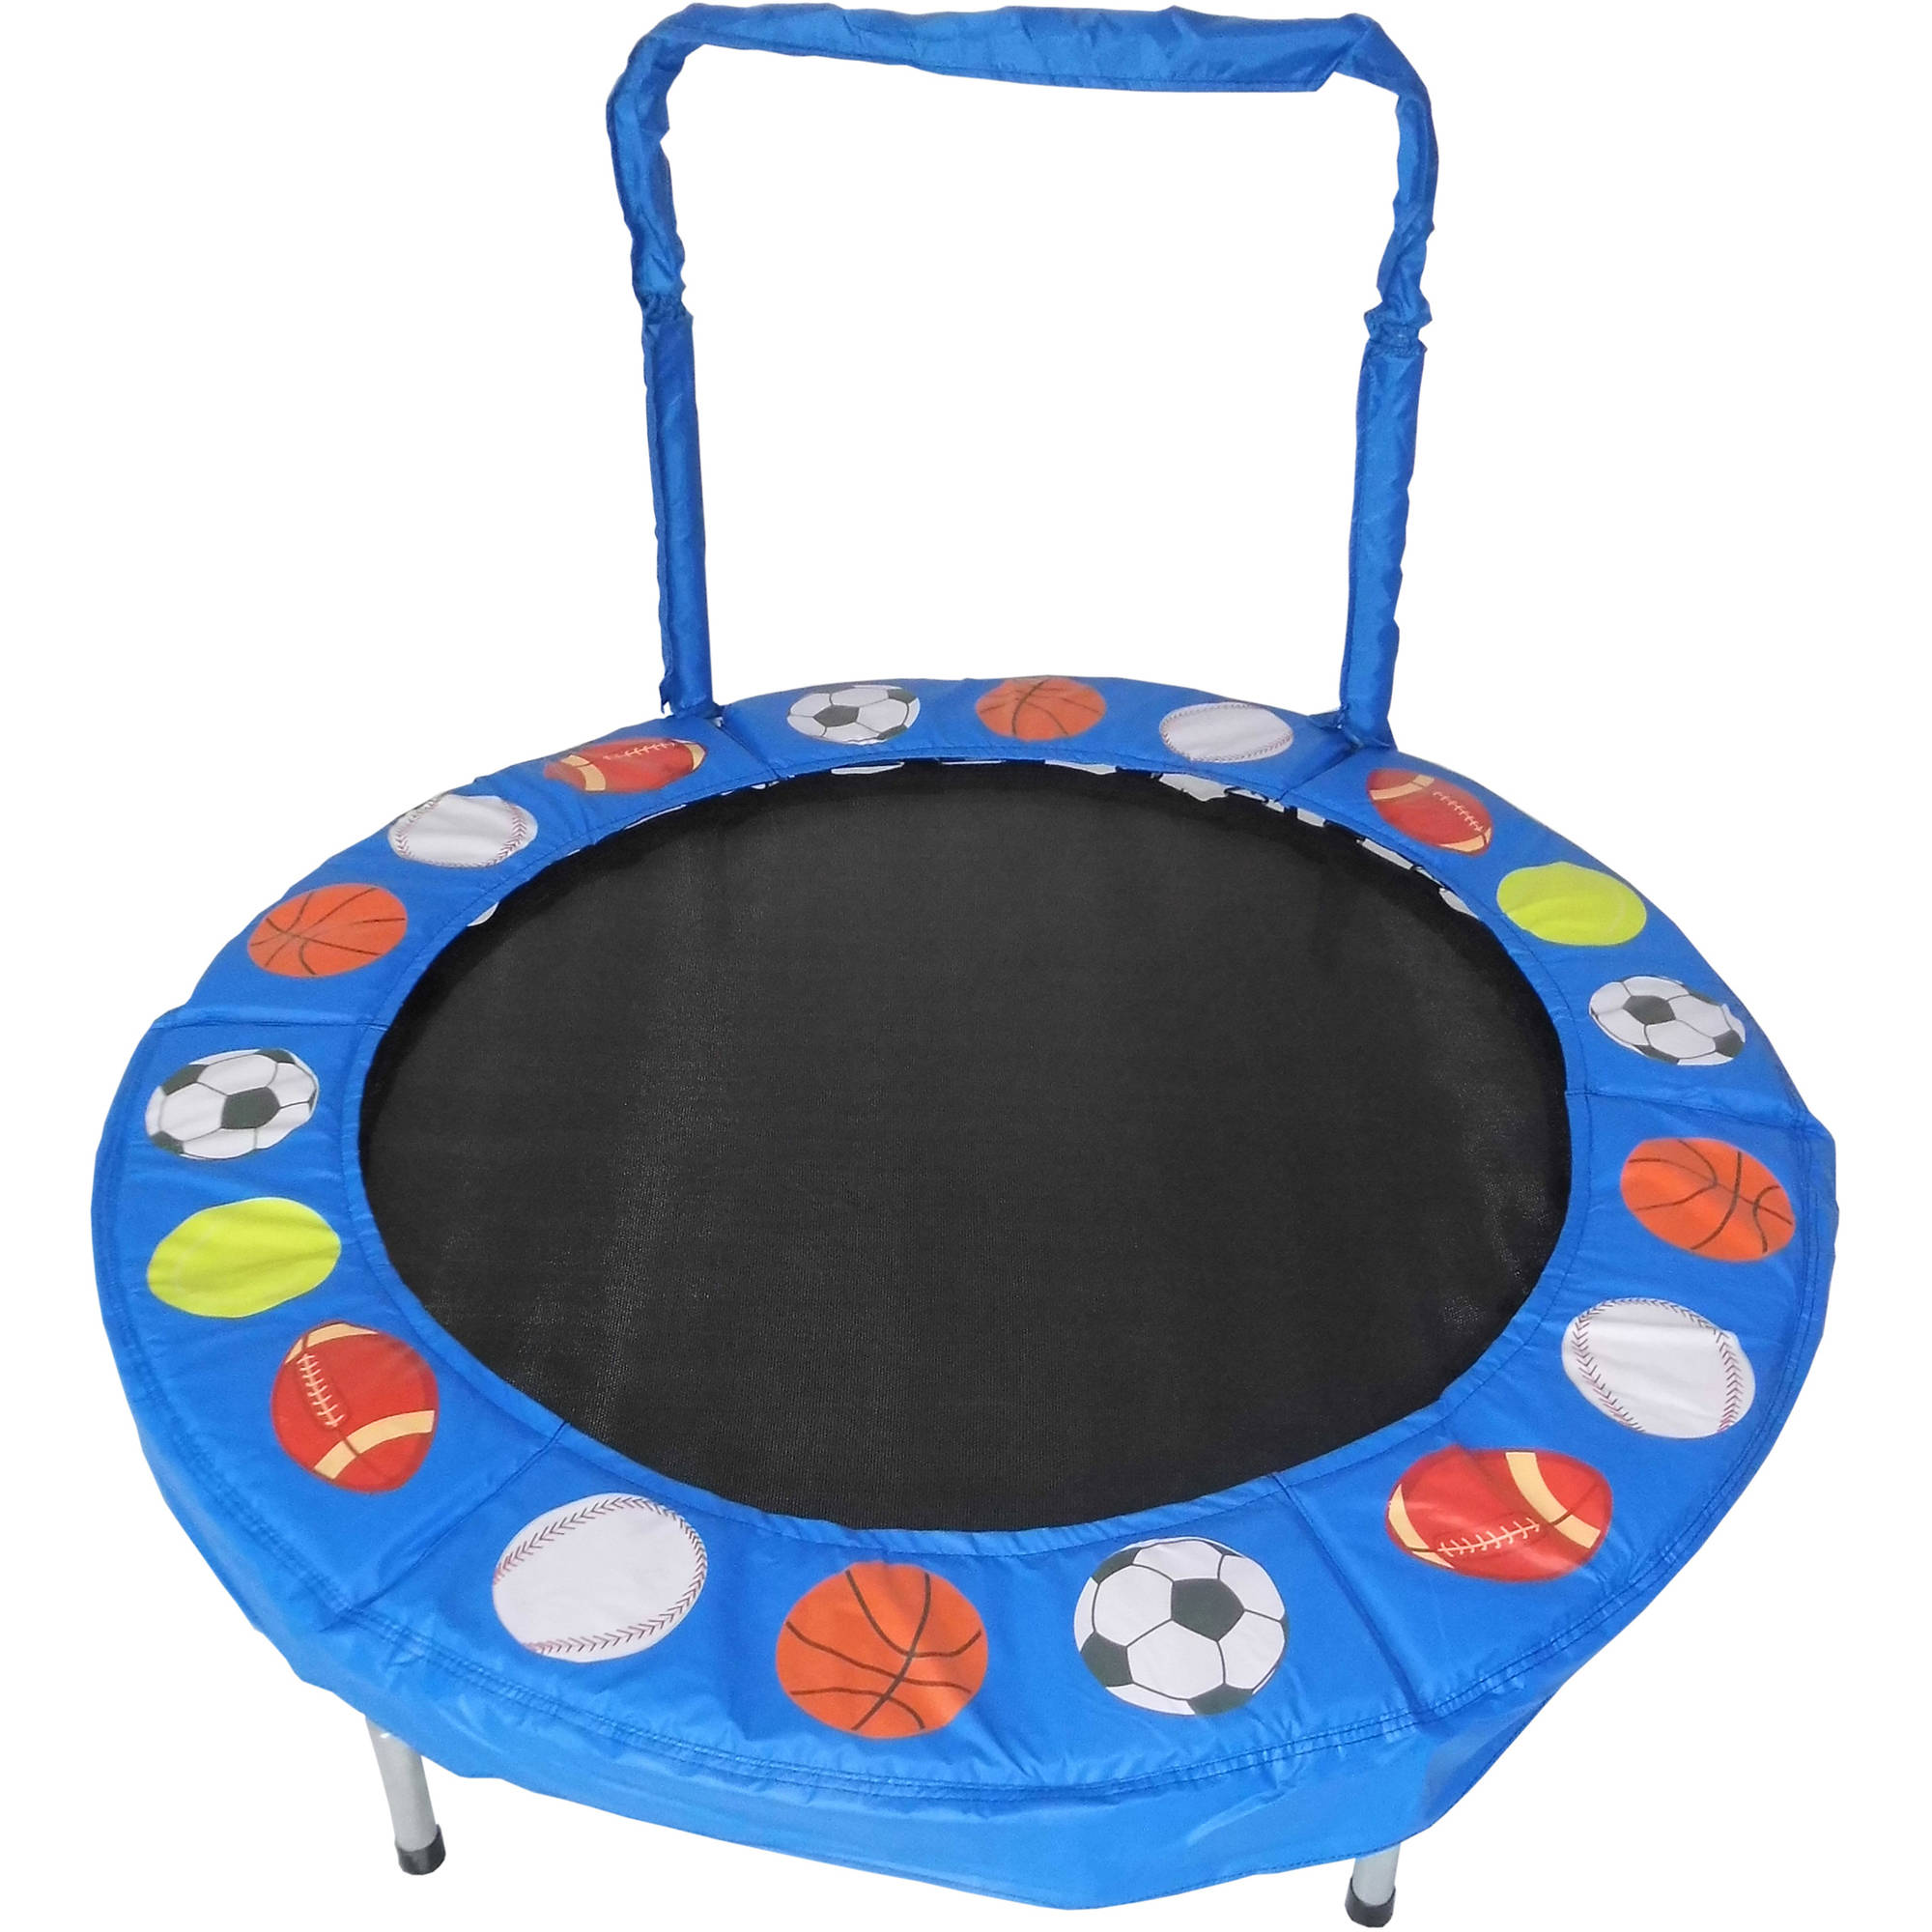 Jumpking Trampoline 4-Foot Bouncer for Kids, Blue Sport Balls